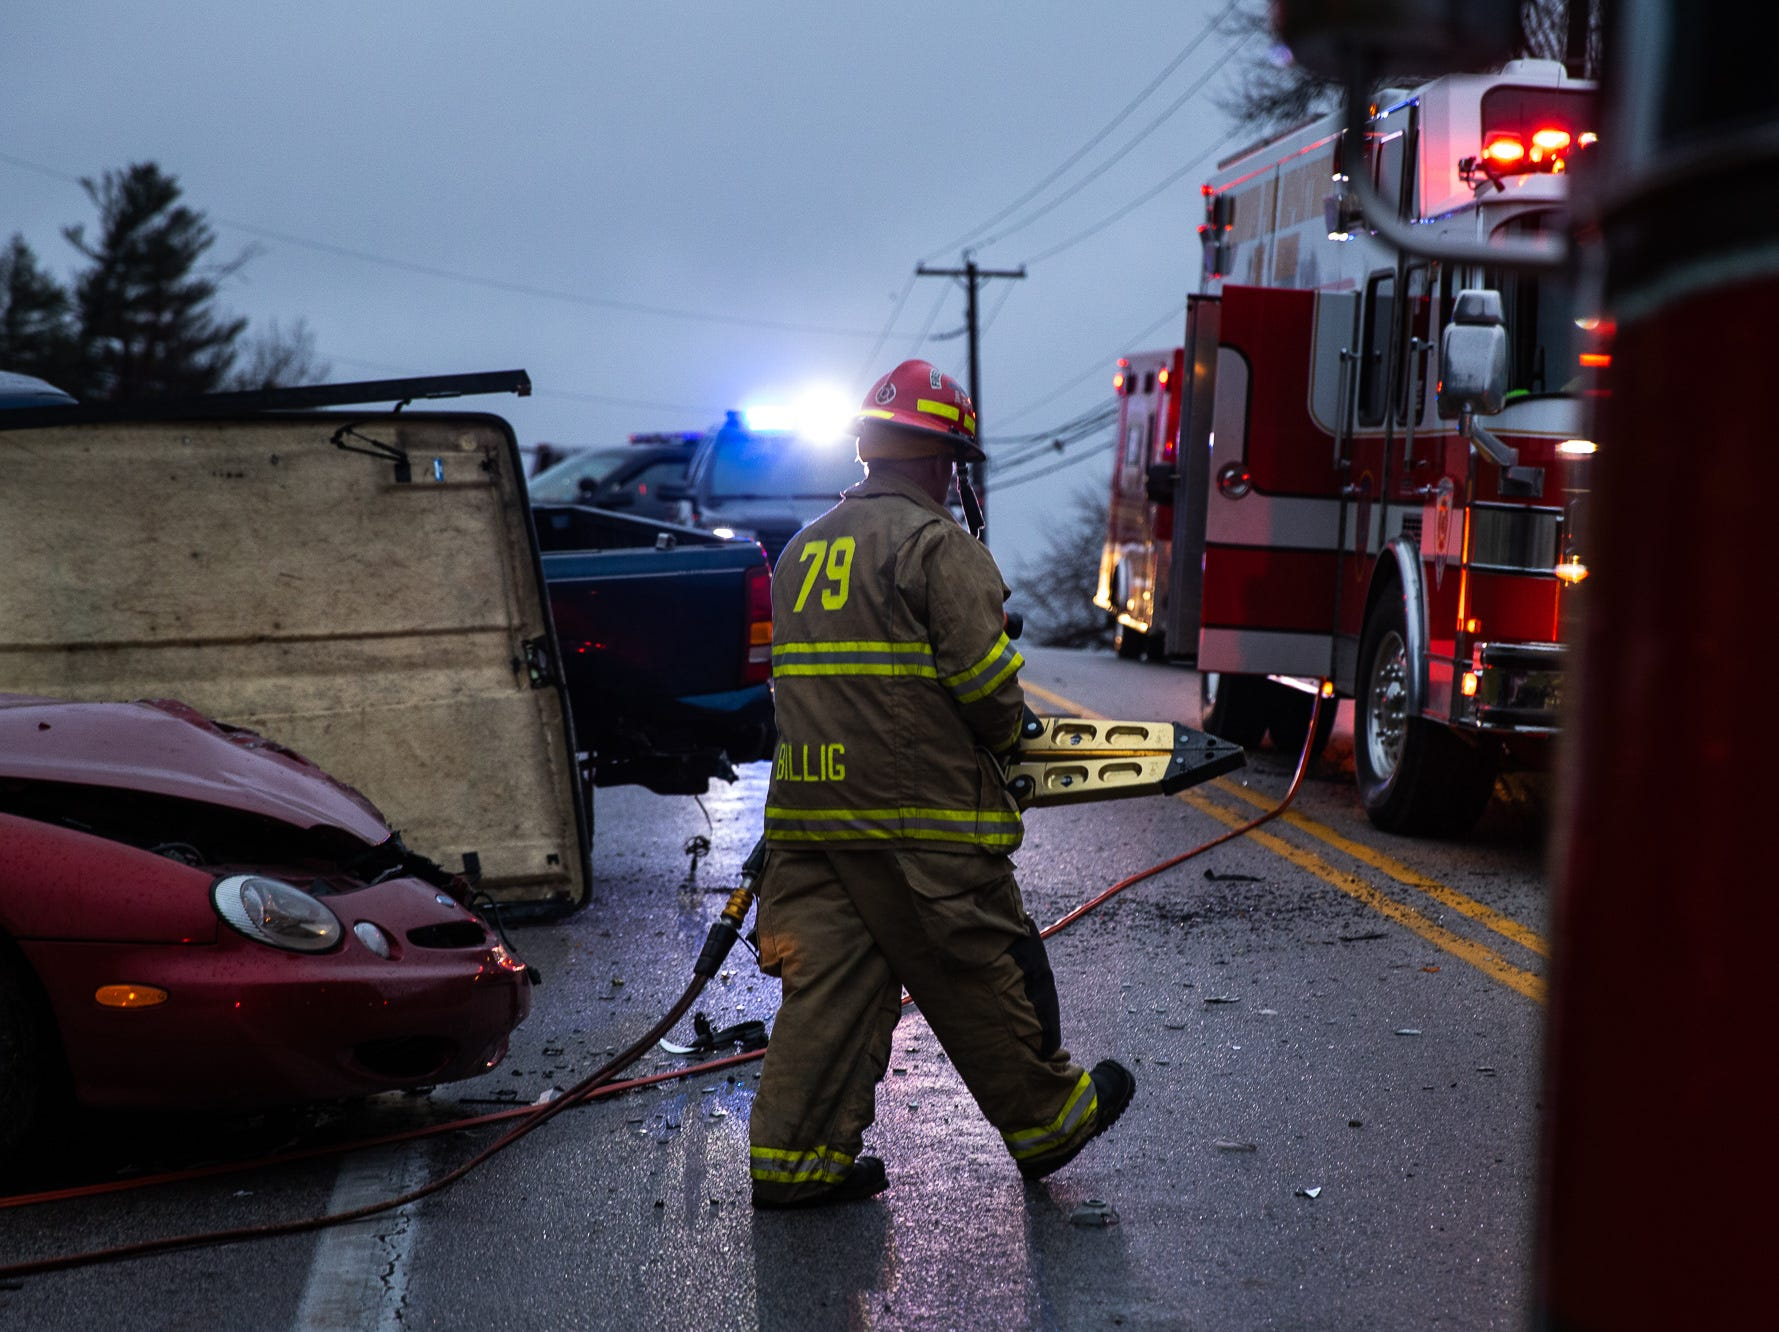 Firefighter Howard Billig carries away hydraulic rescue tools after using them to pop a car door open to gain better access to the flames at the scene of a three-vehicle crash with a fully involved car fire on the 2200 block of Broadway in Penn Township on Dec. 16. The fire resulted in three injuries, and two women were taken to the hospital following the crash, according to officials.